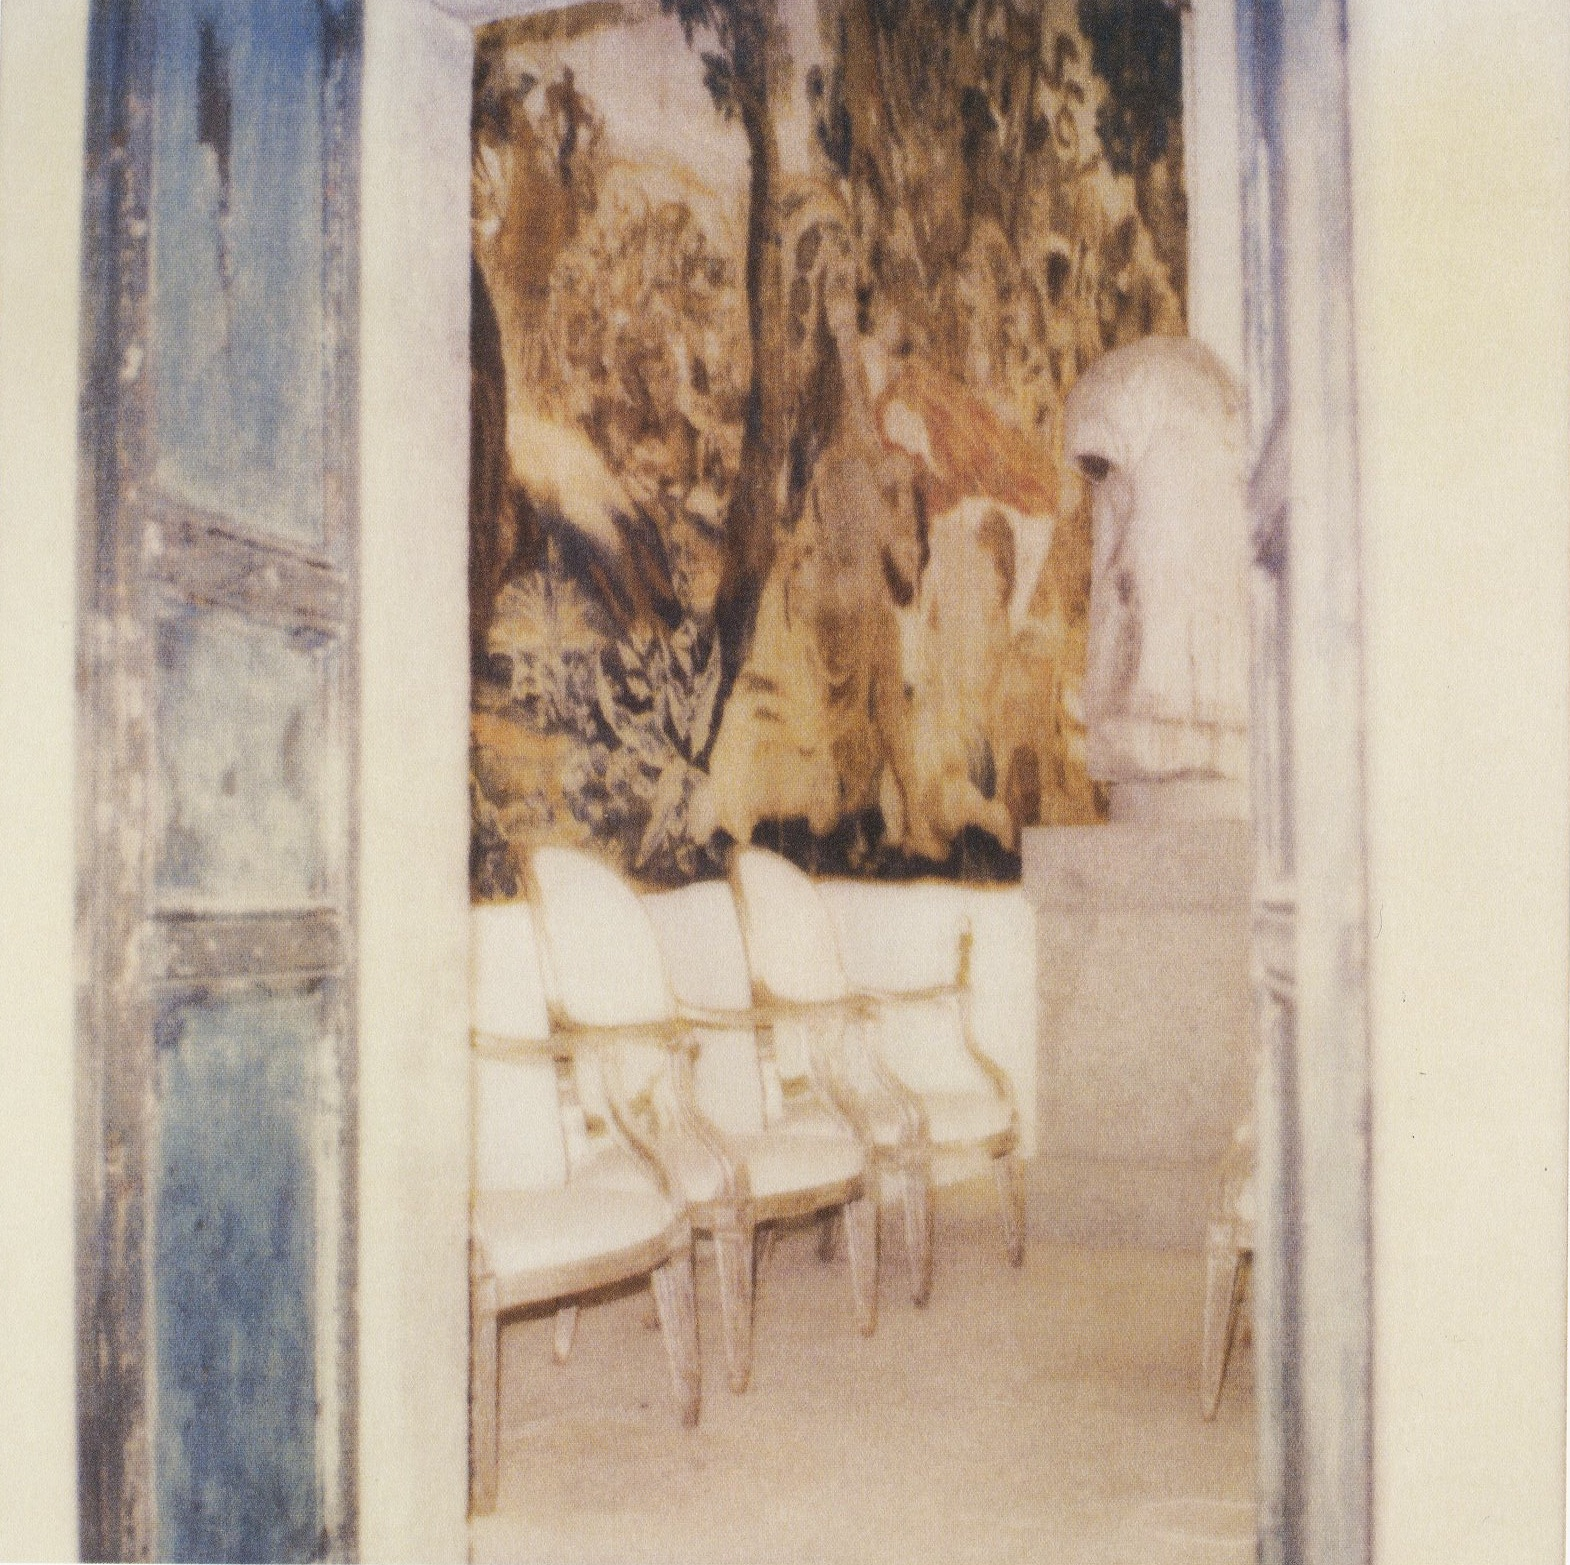 Bruno De Caumont For Pilar~: Cy Twombly's Photographs Of Interiors: 1951